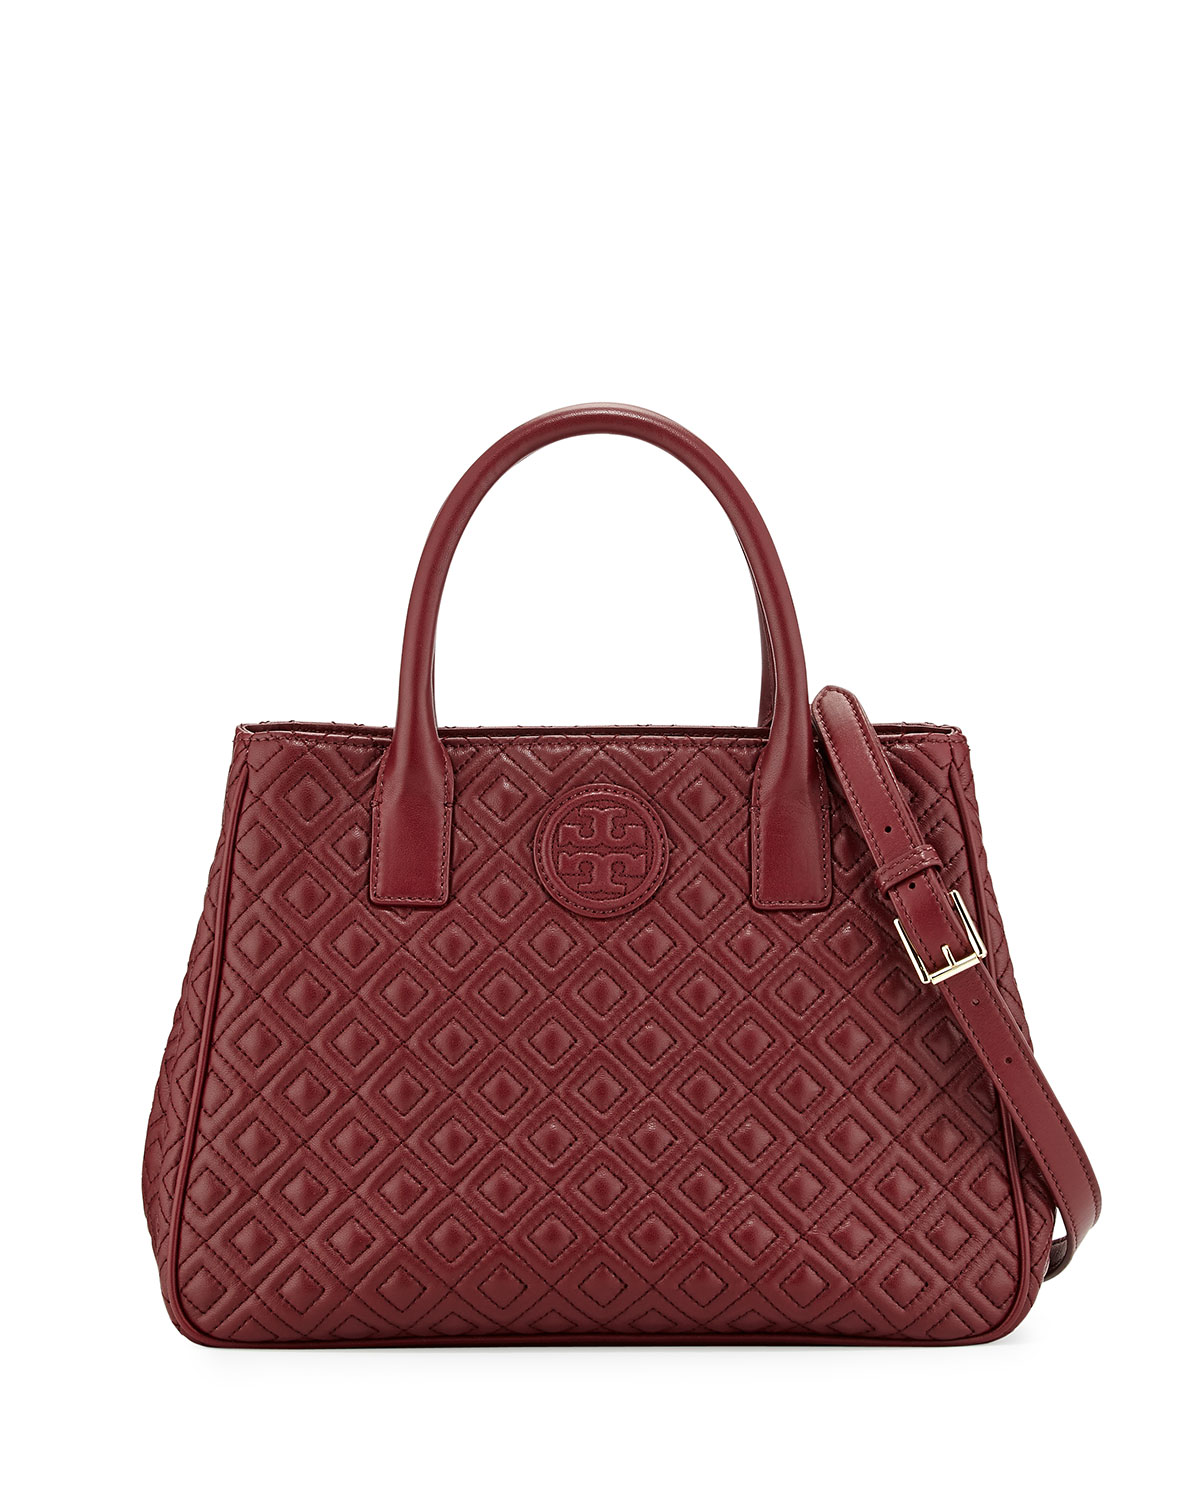 Tory Burch Marion Quilted Tote Bag Red Agate Neiman Marcus